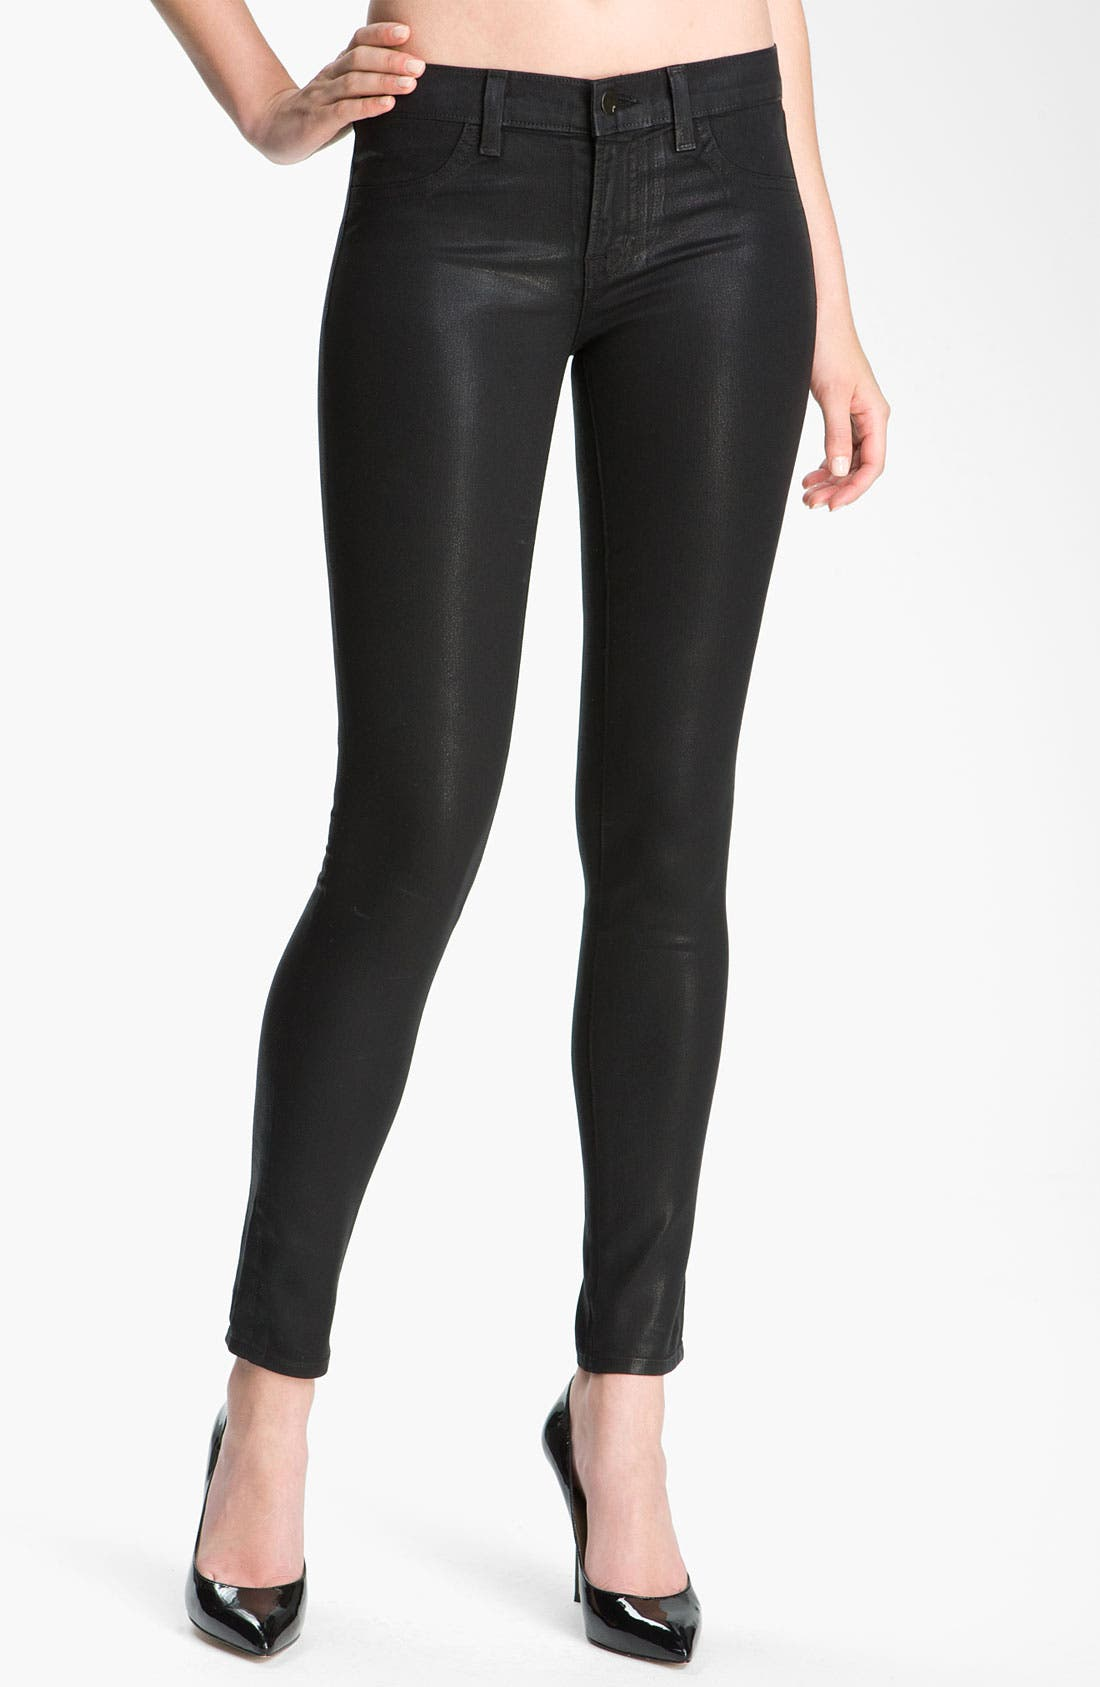 Alternate Image 1 Selected - J Brand 'The Legging' Coated Stretch Jeans (Stealth)